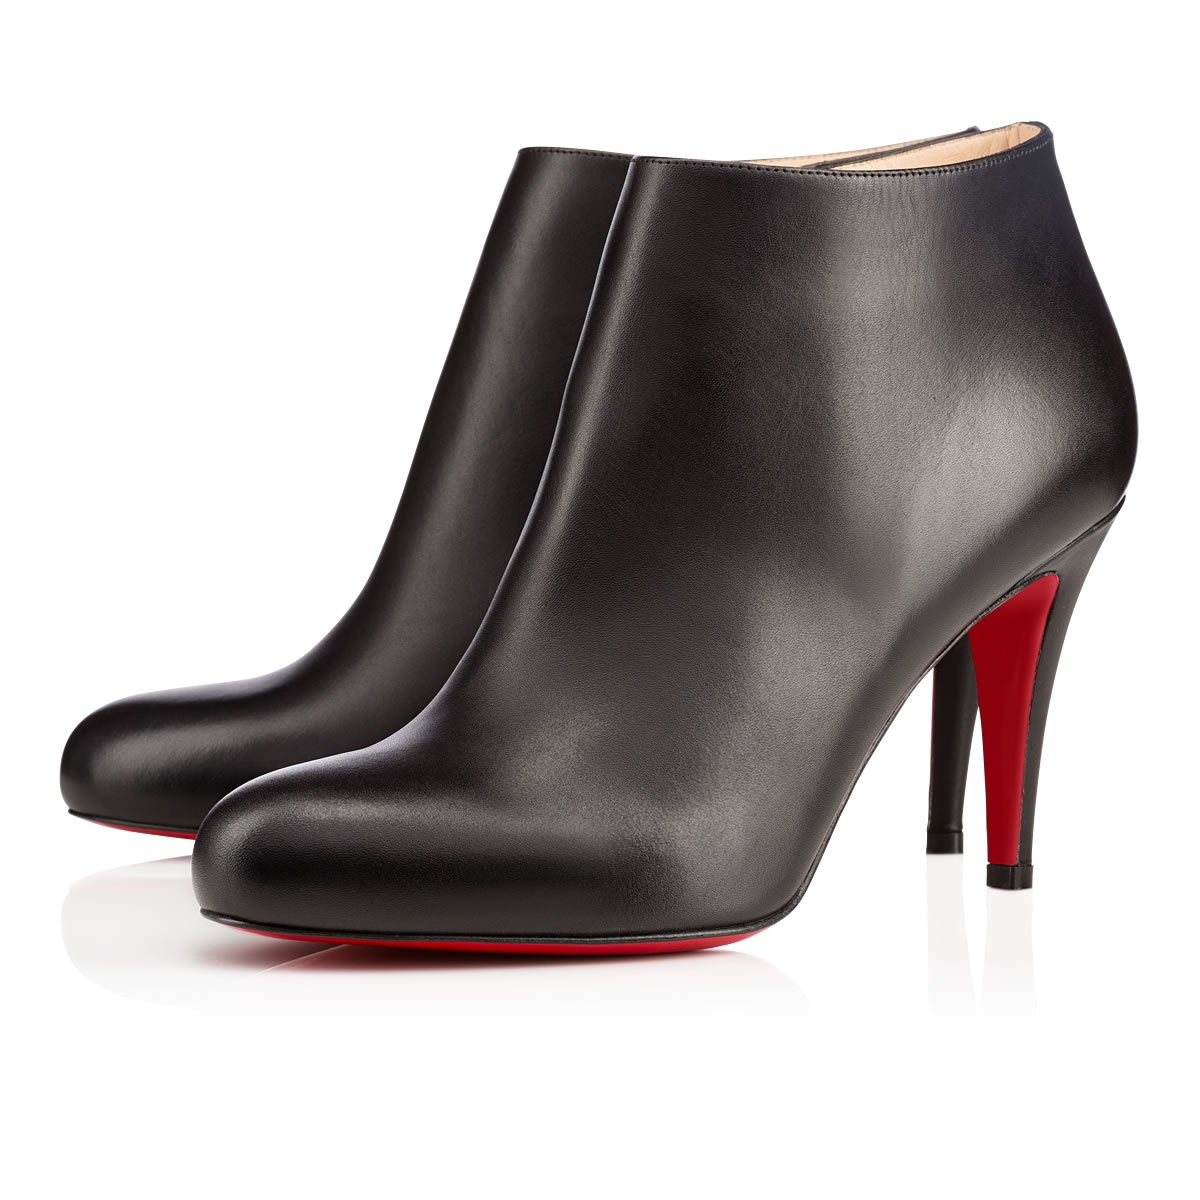 c41e99564475 Christian Louboutin Belle Leather Red-Sole Ankle Boots